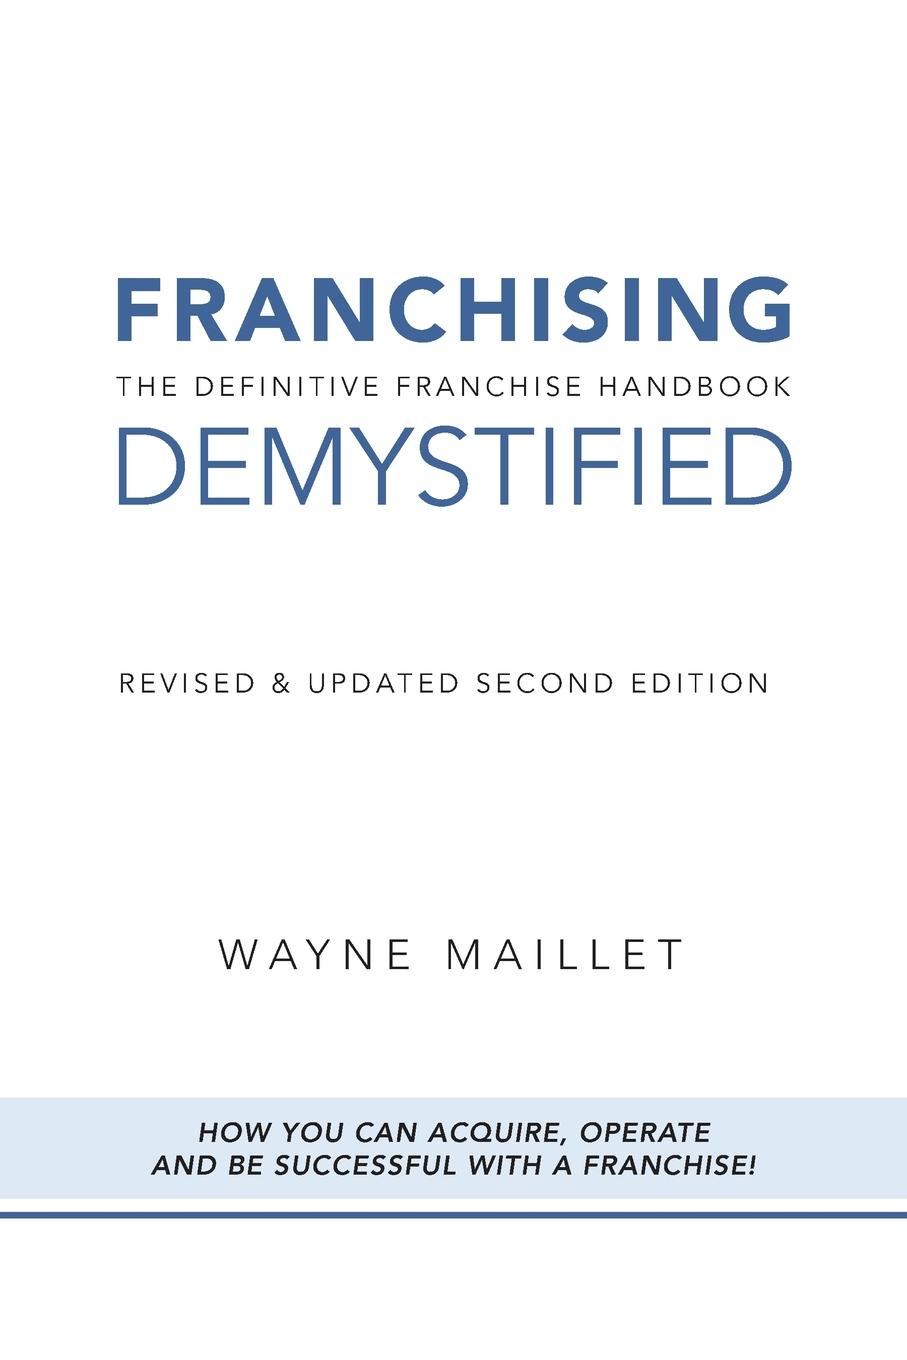 Wayne Maillet Franchising Demystified. The Definitive Franchise Handbook k1x k1x ny franchise